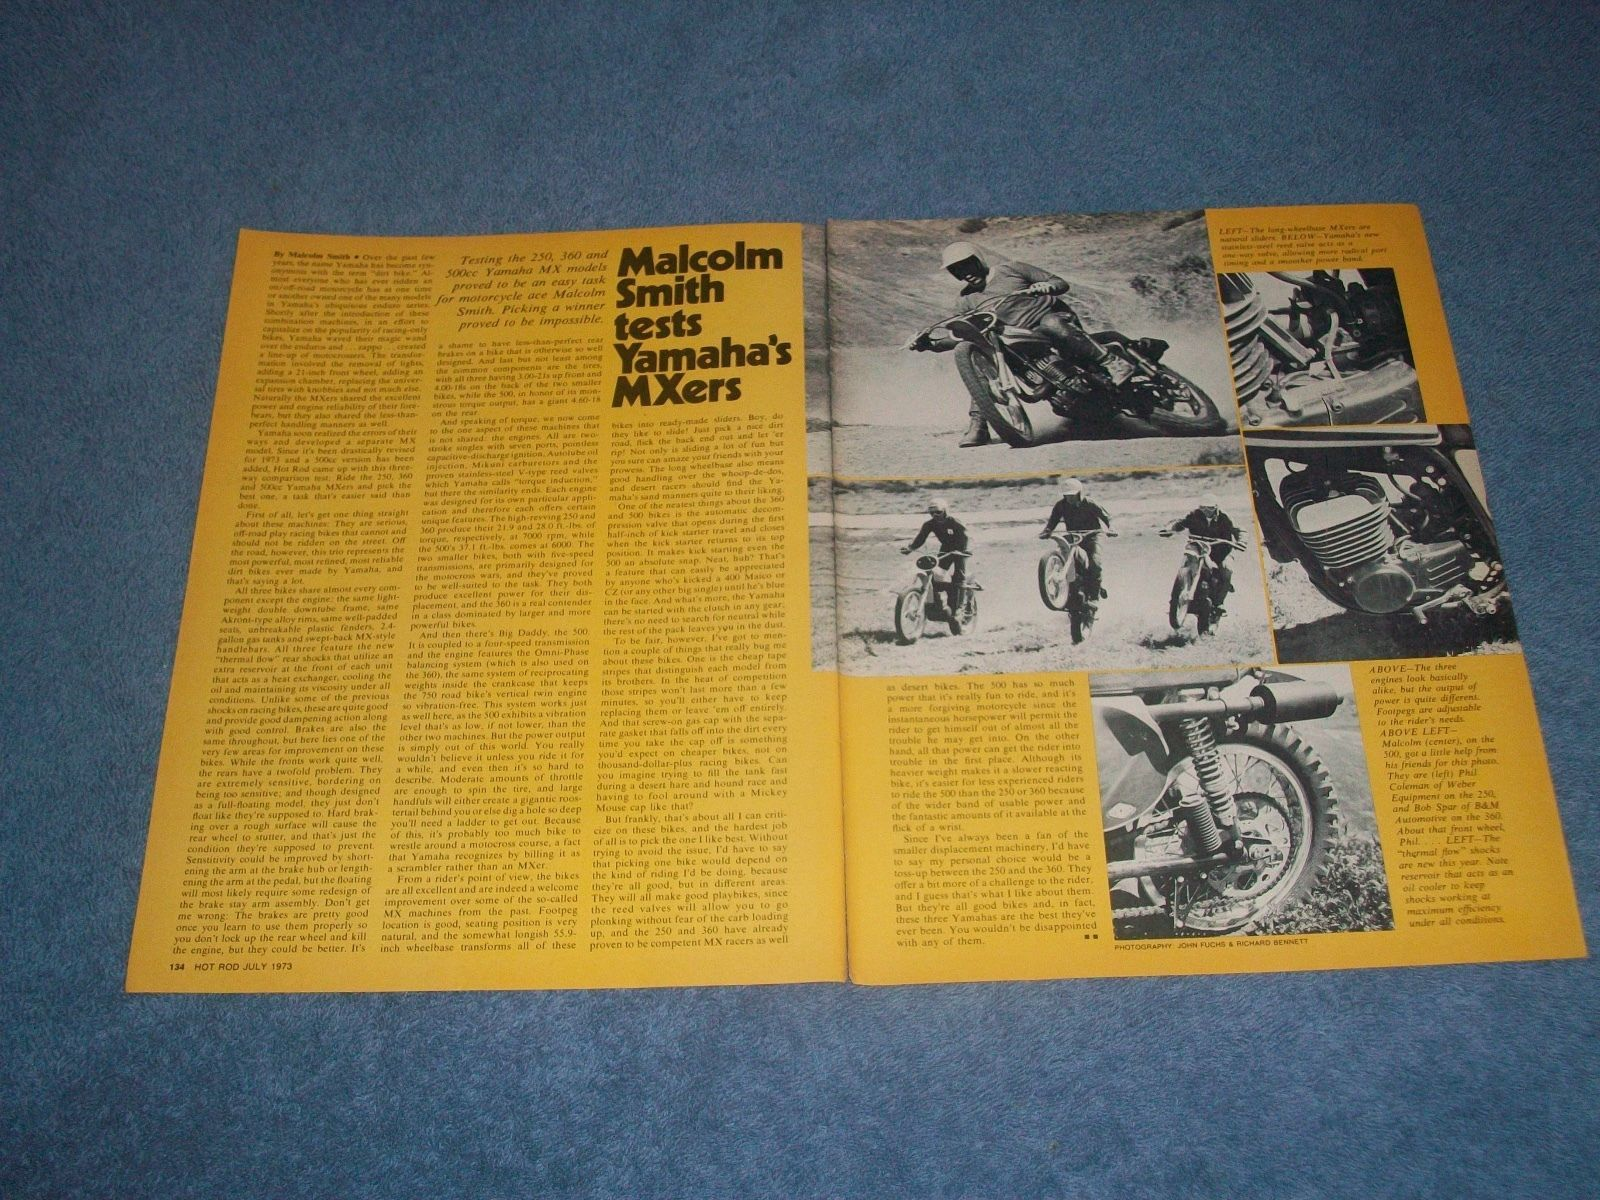 "1973 Yamaha 250 360 500 Vintage Bike Test Article ""Malcolm Smith Tests MXers"""